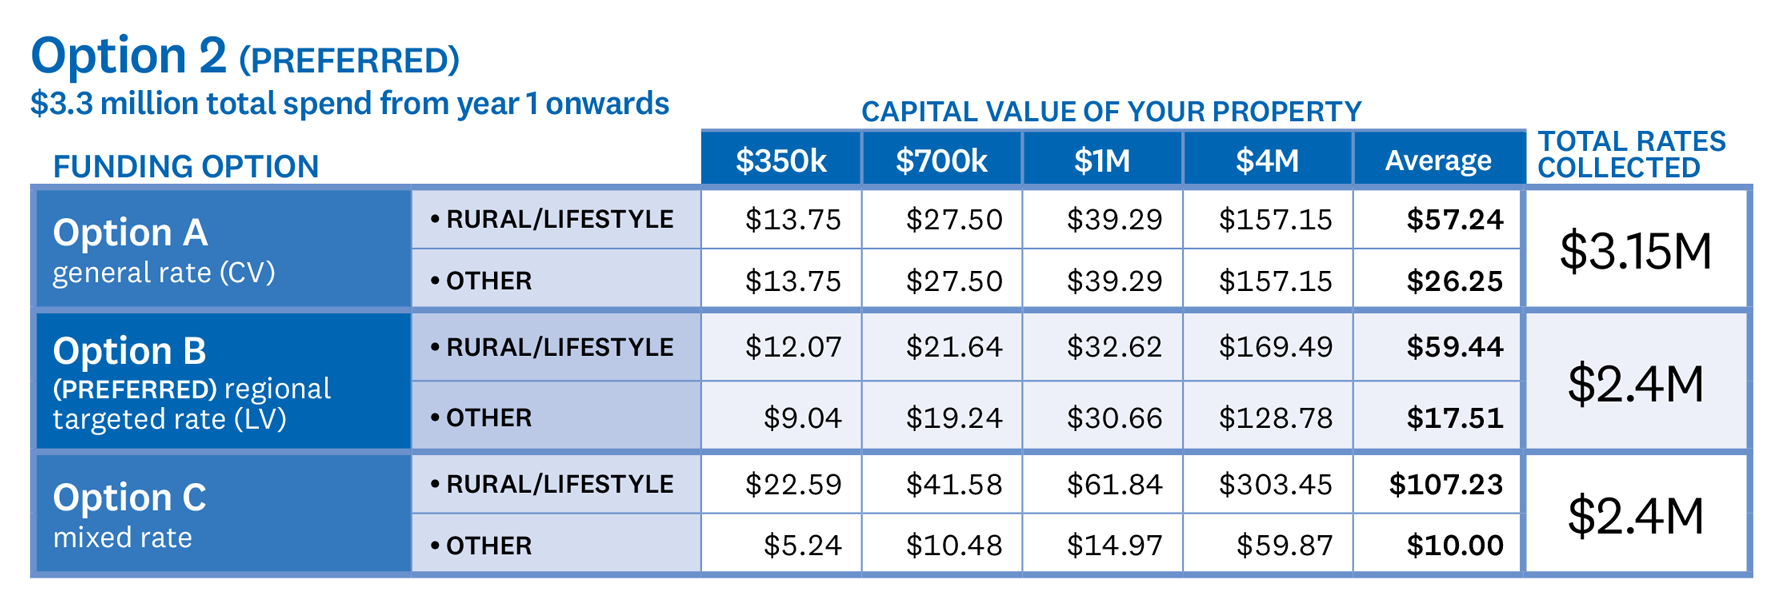 TABLE – Option 2 $3.3 million total spend from year 1 onwards Under funding Option A, where a general rate would be applied to the capital value of a property; a property with a capital value of $350,000 would pay $13.75, a capital value of $700,000 would pay $27.50, a capital value of $1,000,000 would pay $39.29, and a capital value of $4,000,000 would pay $157.15. The average rural or lifestyle property would pay $57.24 and the average other property would pay $26.25. The total rates collected under Option A would be $3,150,000. Under our preferred option, funding Option B, where a regional targeted rate would be applied to the land value of a property; a rural or lifestyle property with a capital value of $350,000 would pay $12.07, a capital value of $700,000 would pay $21.64, a capital value of $1,000,000 would pay $32.62, and a capital value of $4,000,000 would pay $169.49. The average rural or lifestyle property would pay $59.44. The other category of property with a capital value of $350,000 would pay $9.04, a capital value of $700,000 would pay $19.24, a capital value of $1,000,000 would pay $30.66, and a capital value of $4,000,000 would pay $128.78. The average property would pay $17.51. The total rates collected under Option B would be $2,400,000. Under funding Option C, where a mixed rate is applied; a rural or lifestyle property with a capital value of $350,000 would pay $22.59, a capital value of $700,000 would pay $41.58, a capital value of $1,000,000 would pay $61.84, and a capital value of $4,000,000 would pay $303.45. The average rural or lifestyle property would pay $107.23. The other category of property with a capital value of $350,000 would pay $5.24, a capital value of $700,000 would pay $10.48, a capital value of $1,000,000 would pay $14.97, and a capital value of $4,000,000 would pay $59.87. The average property would pay $10.00. The total rates collected under Option C would be $2,400,000.